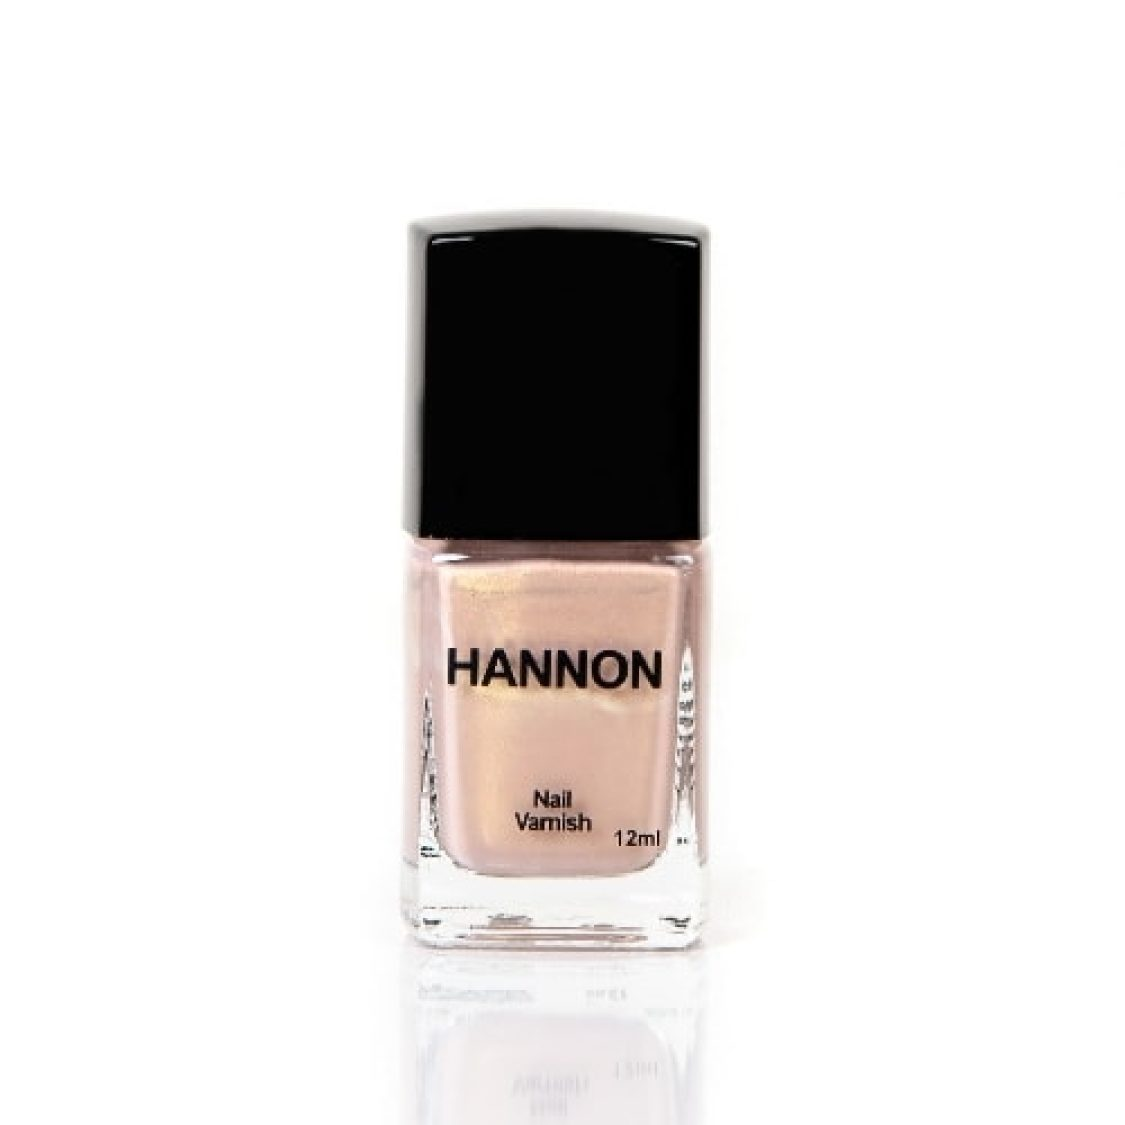 Hannon - Nail Varnish 12ml - Candy Sugar